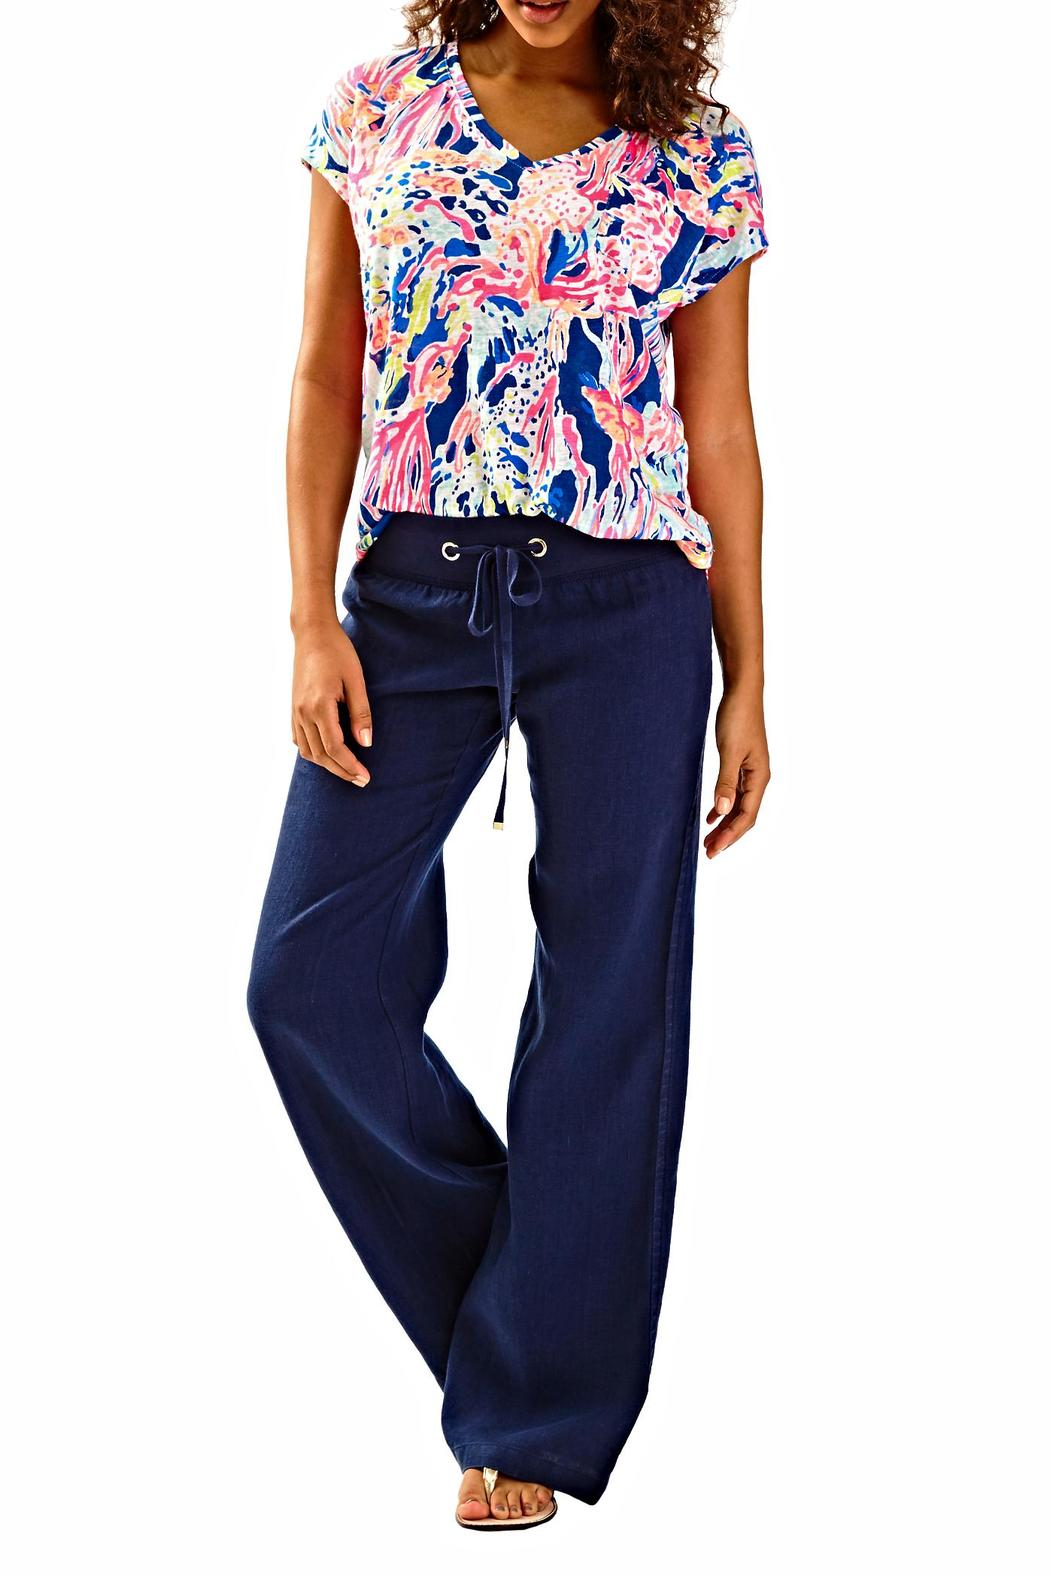 Lilly Pulitzer Linen Beach Pant From Sandestin Golf And